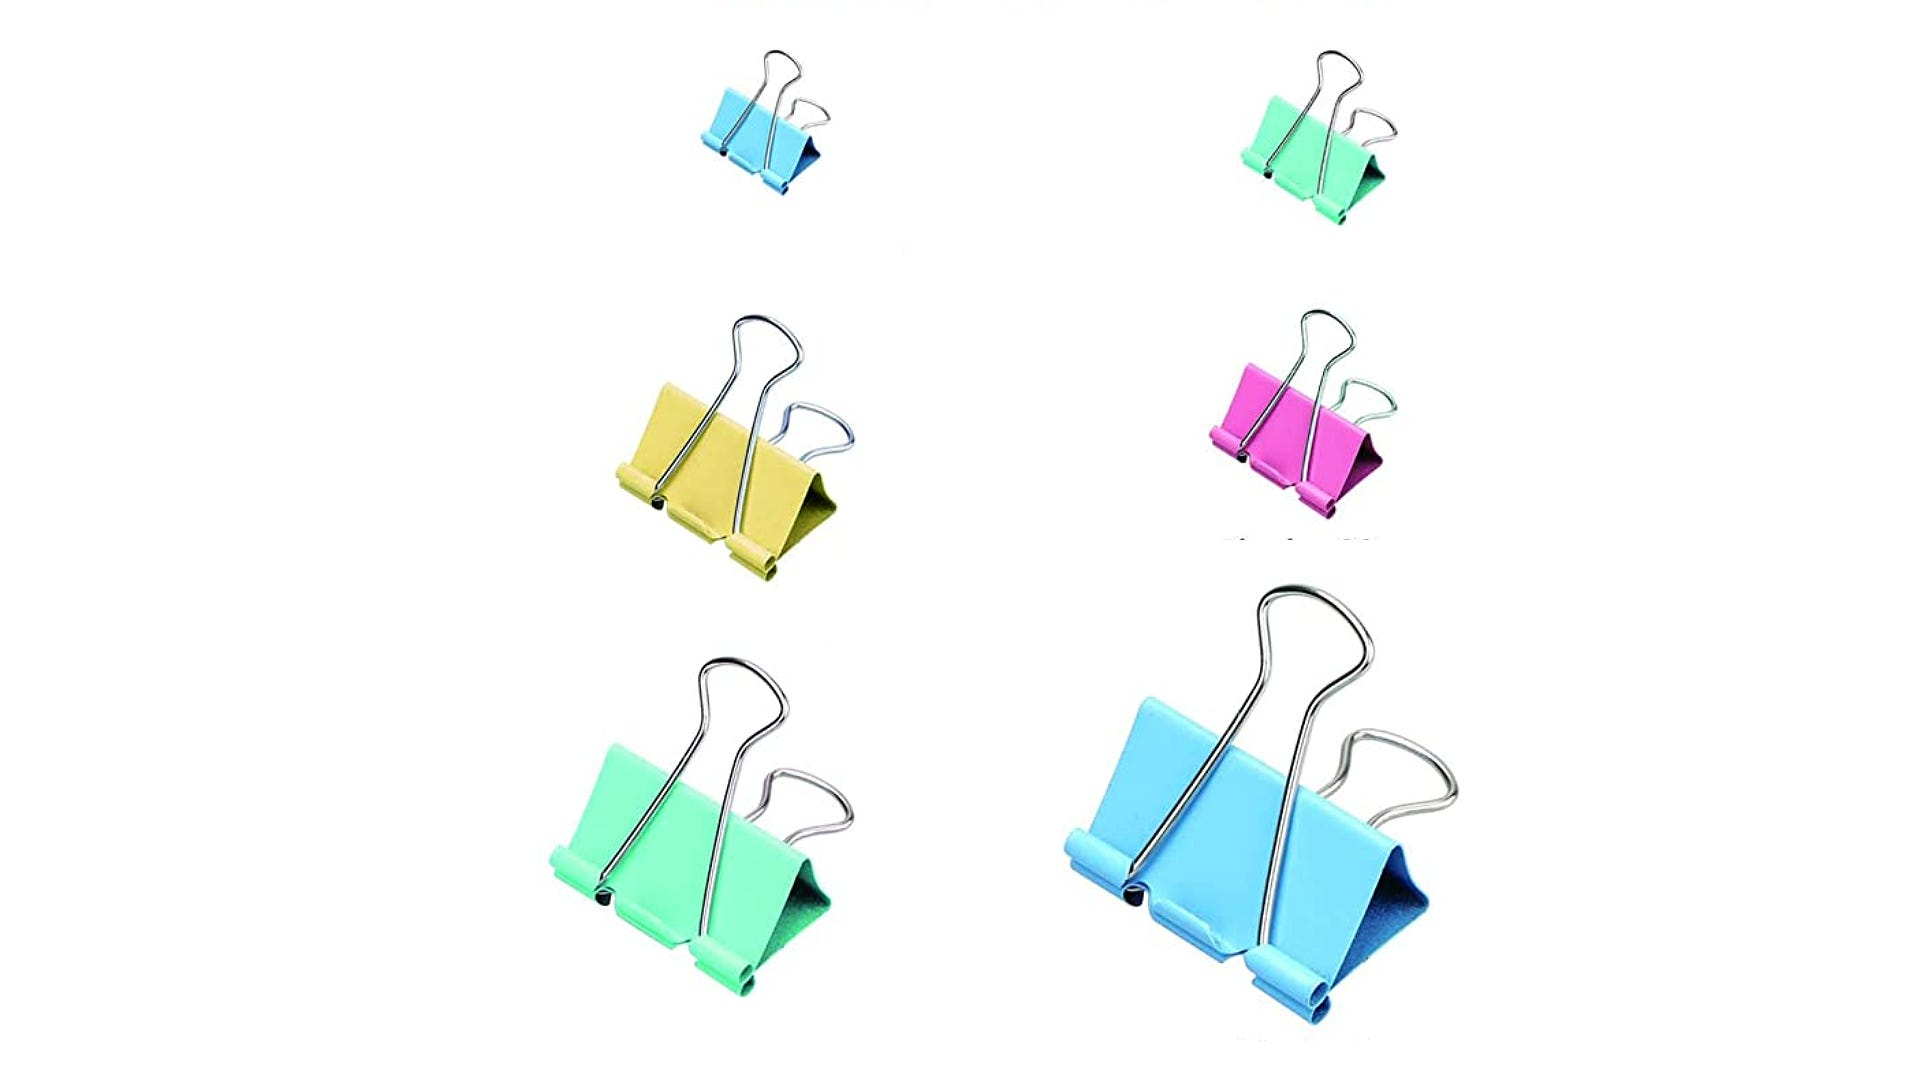 multi sized and colored binder clips displayed on white background